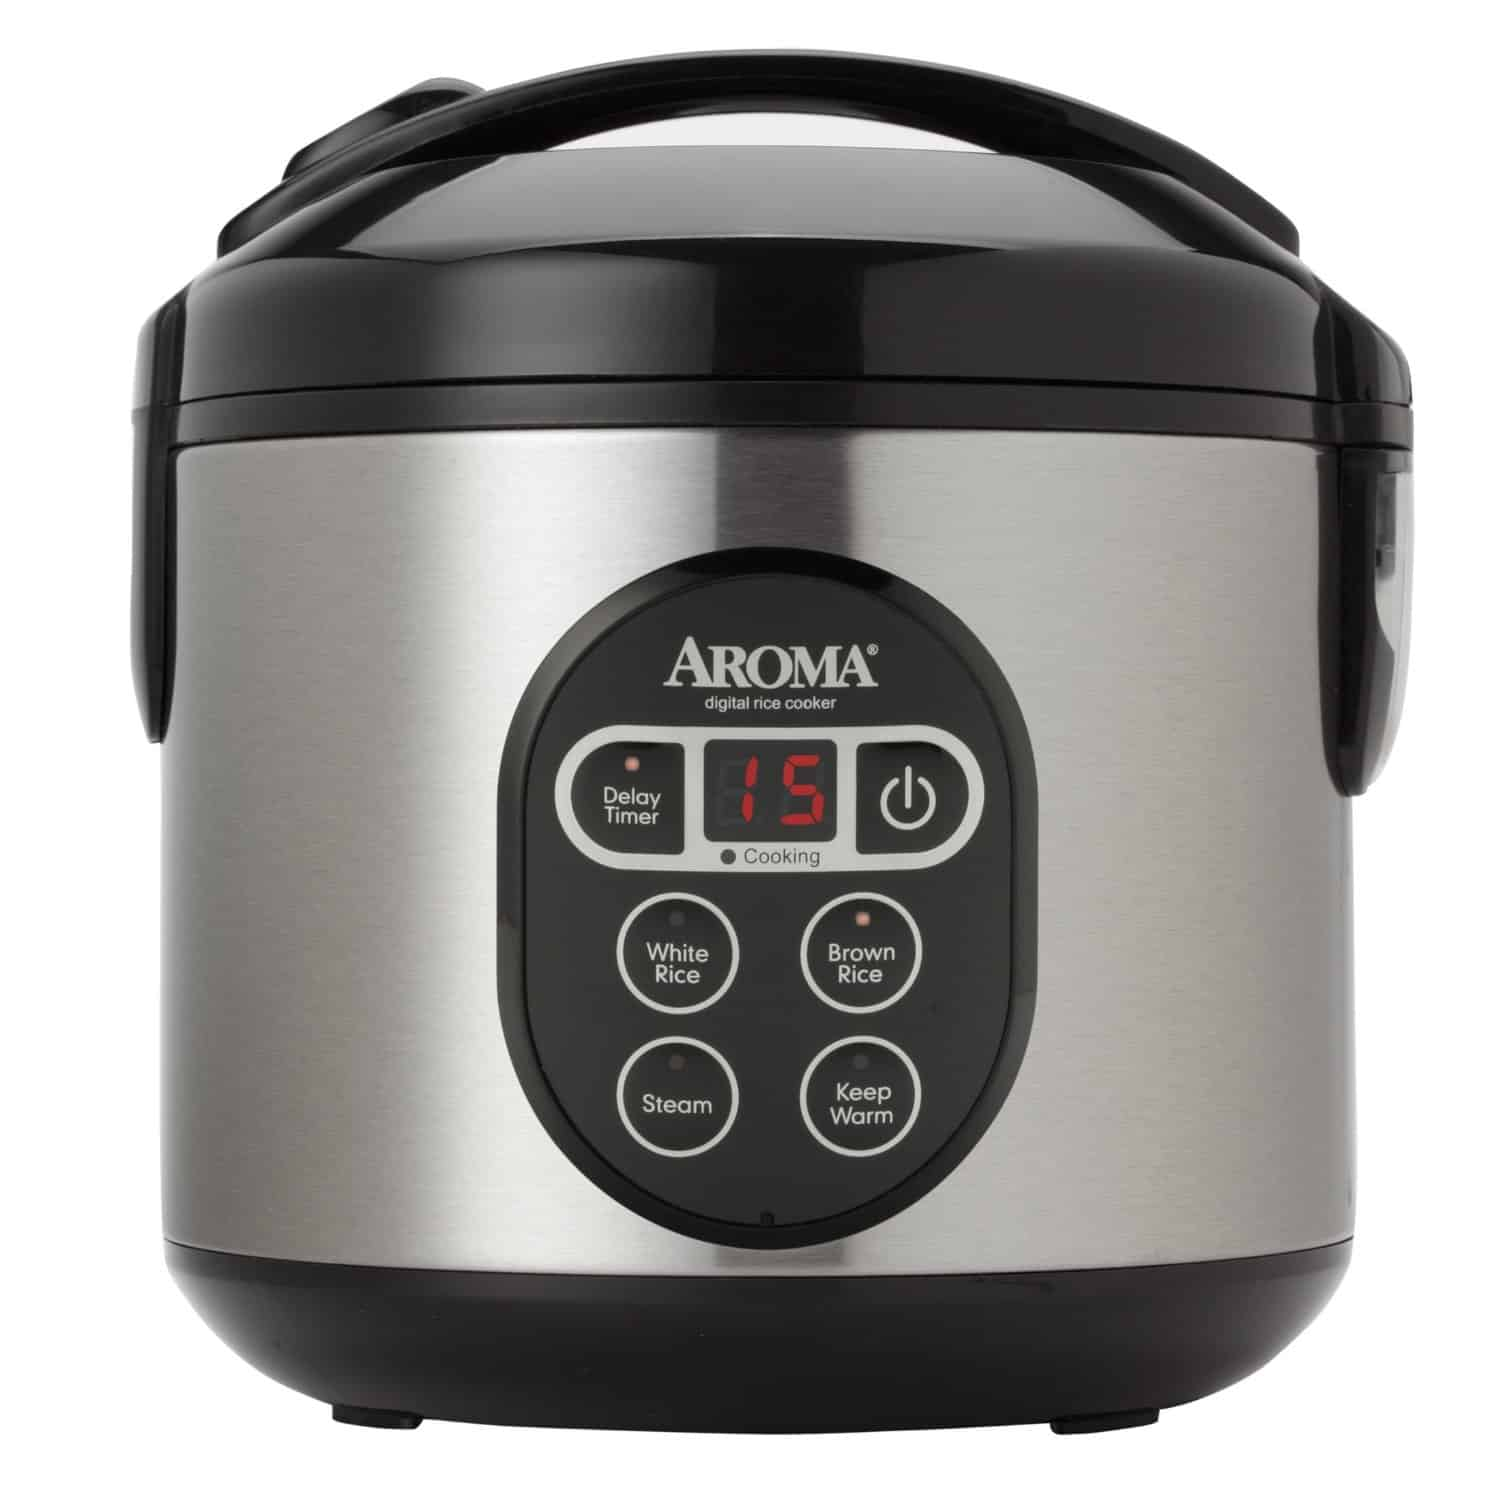 Aroma 8-Cup Digital Rice Cooker Review